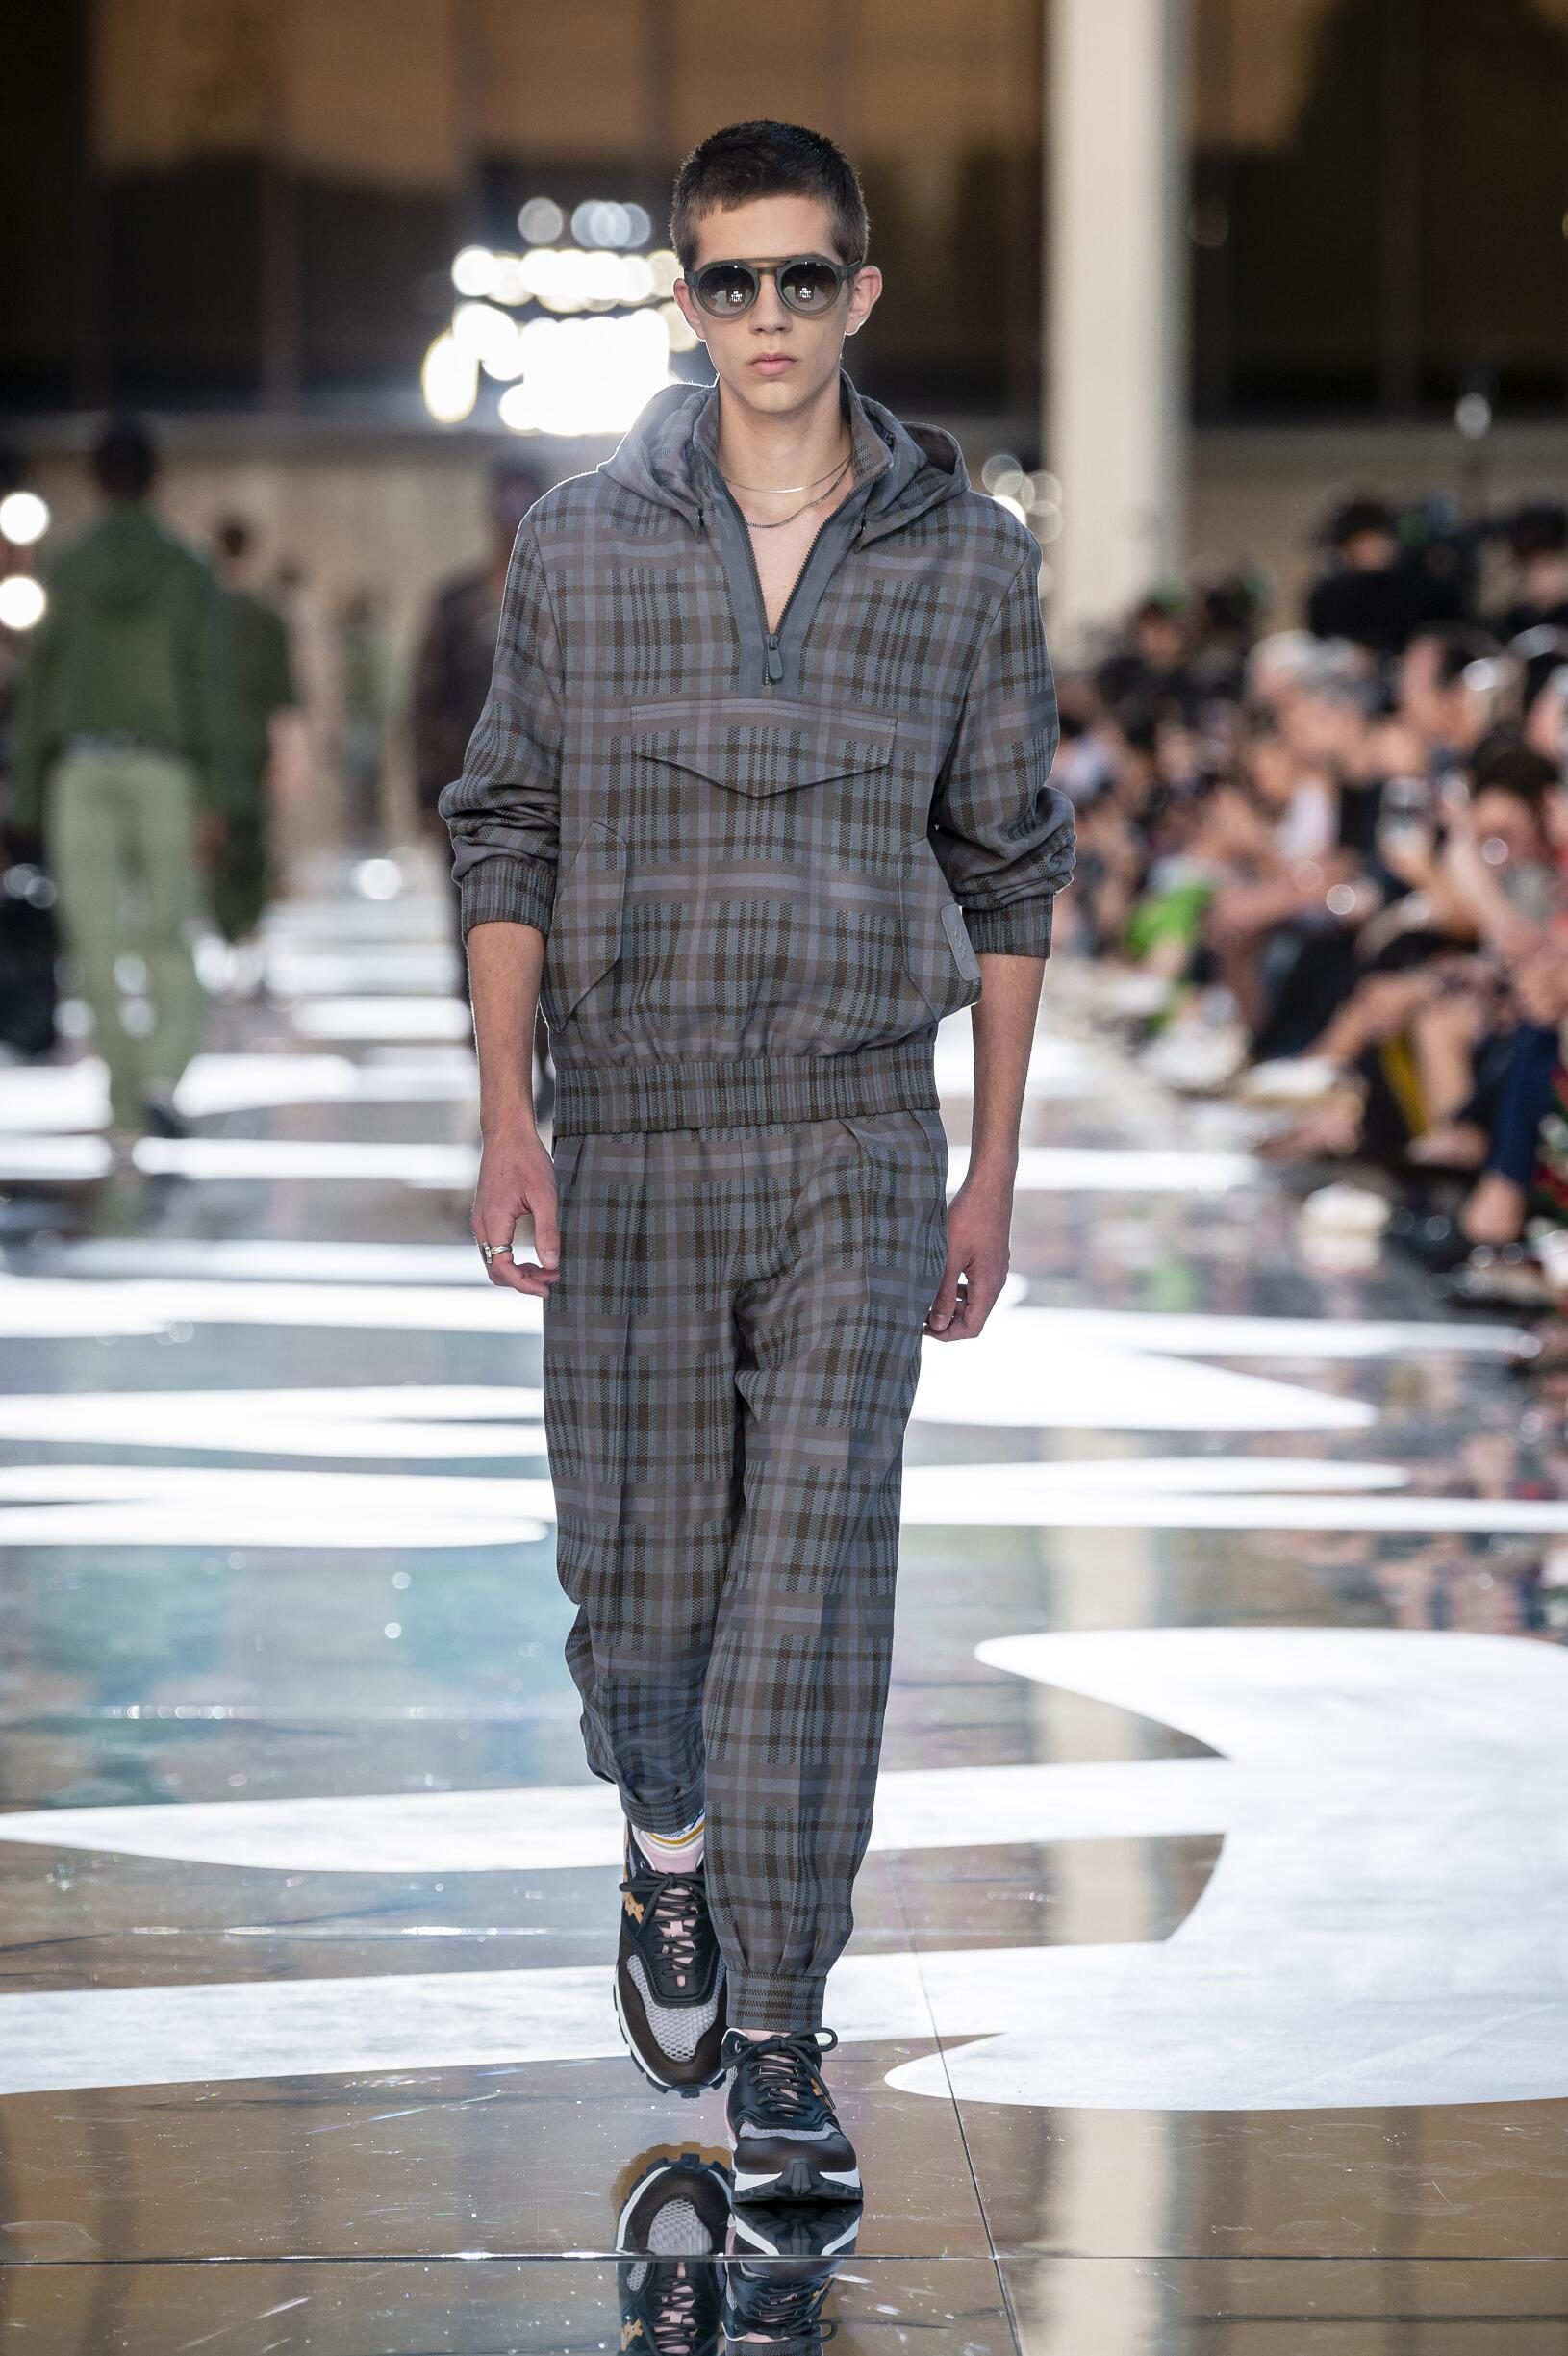 Salvatore Ferragamo Men & Women Spring Summer Milan Discover NOWFASHION, the first real time fashion photography magazine to publish exclusive live fashion shows. Get to see the latest fashion runways in streaming!